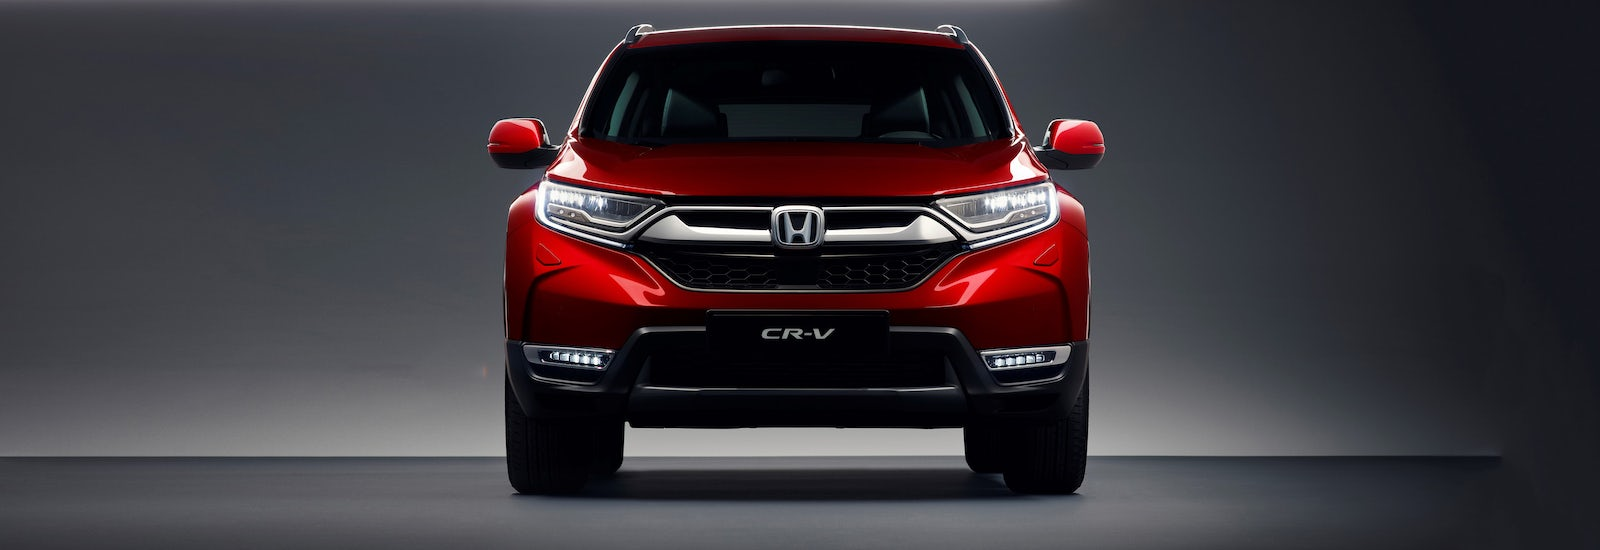 2018 honda cr v price specs and release date carwow. Black Bedroom Furniture Sets. Home Design Ideas